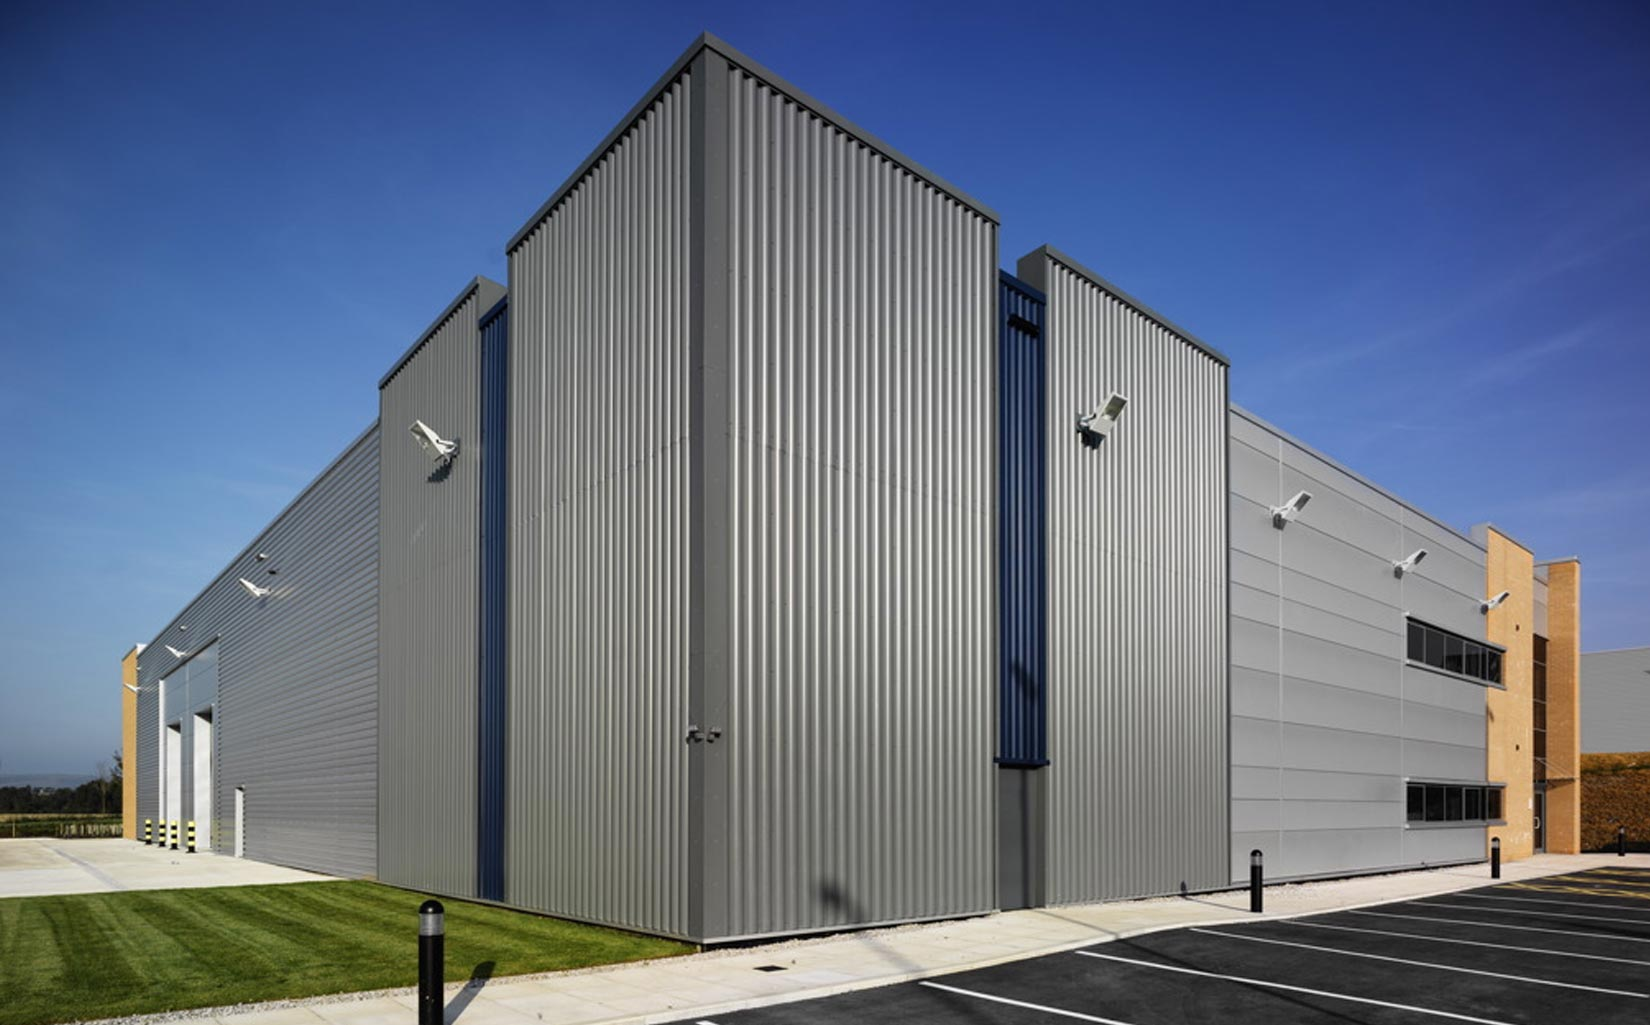 Kingsway Business Park, Milnrow, Rochdale, Cladding Detail